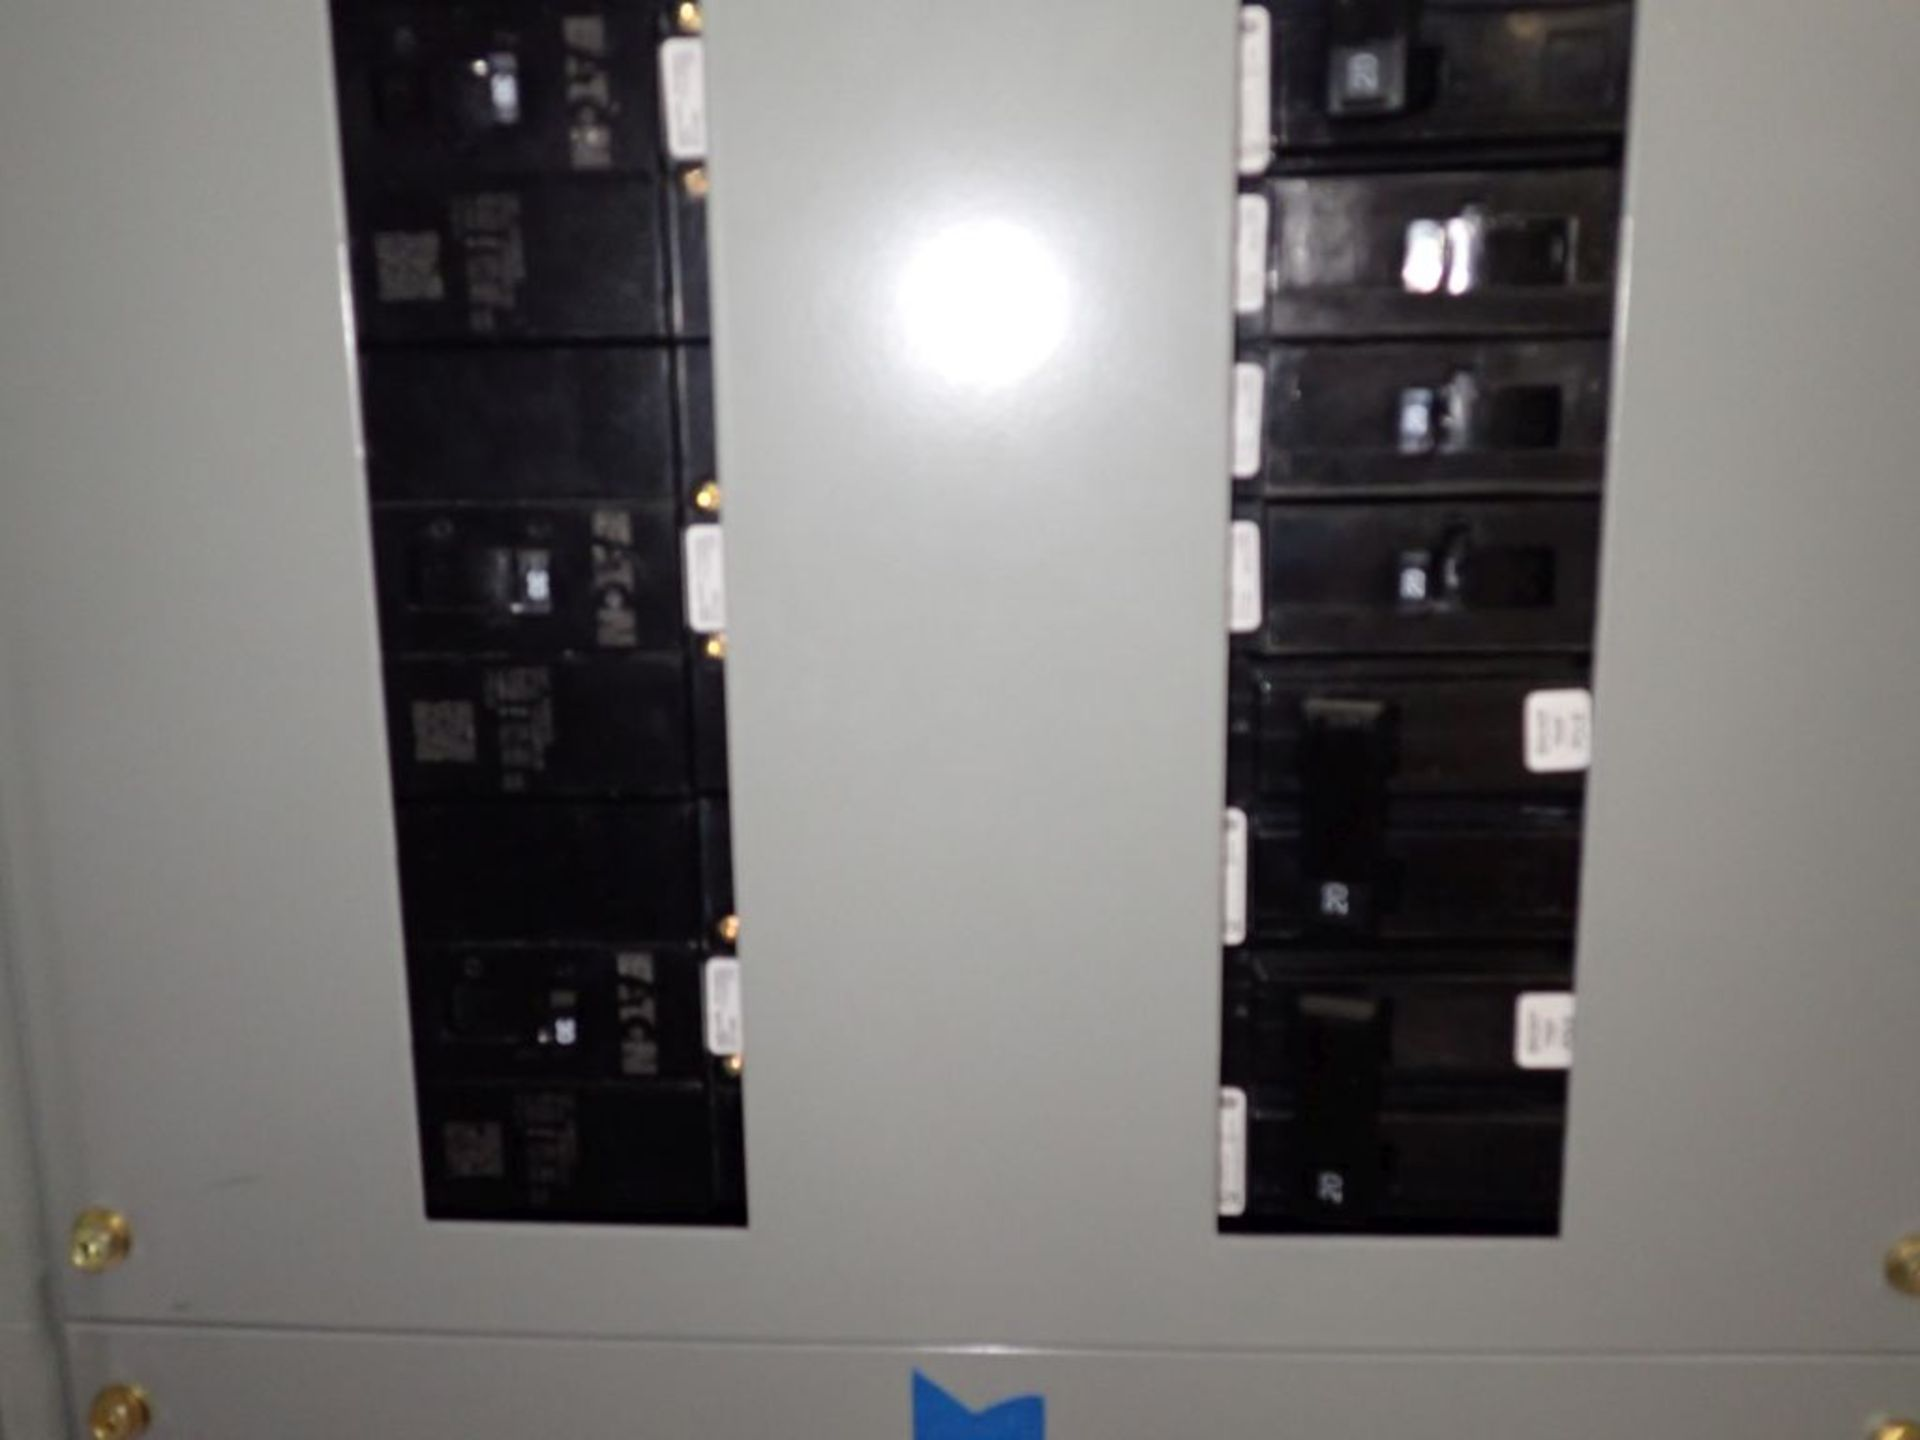 Eaton Freedom 2100 Series Motor Control Center   (2) F206-15A-10HP; (1) F206-30A-10HP; (1) FDRB- - Image 47 of 61